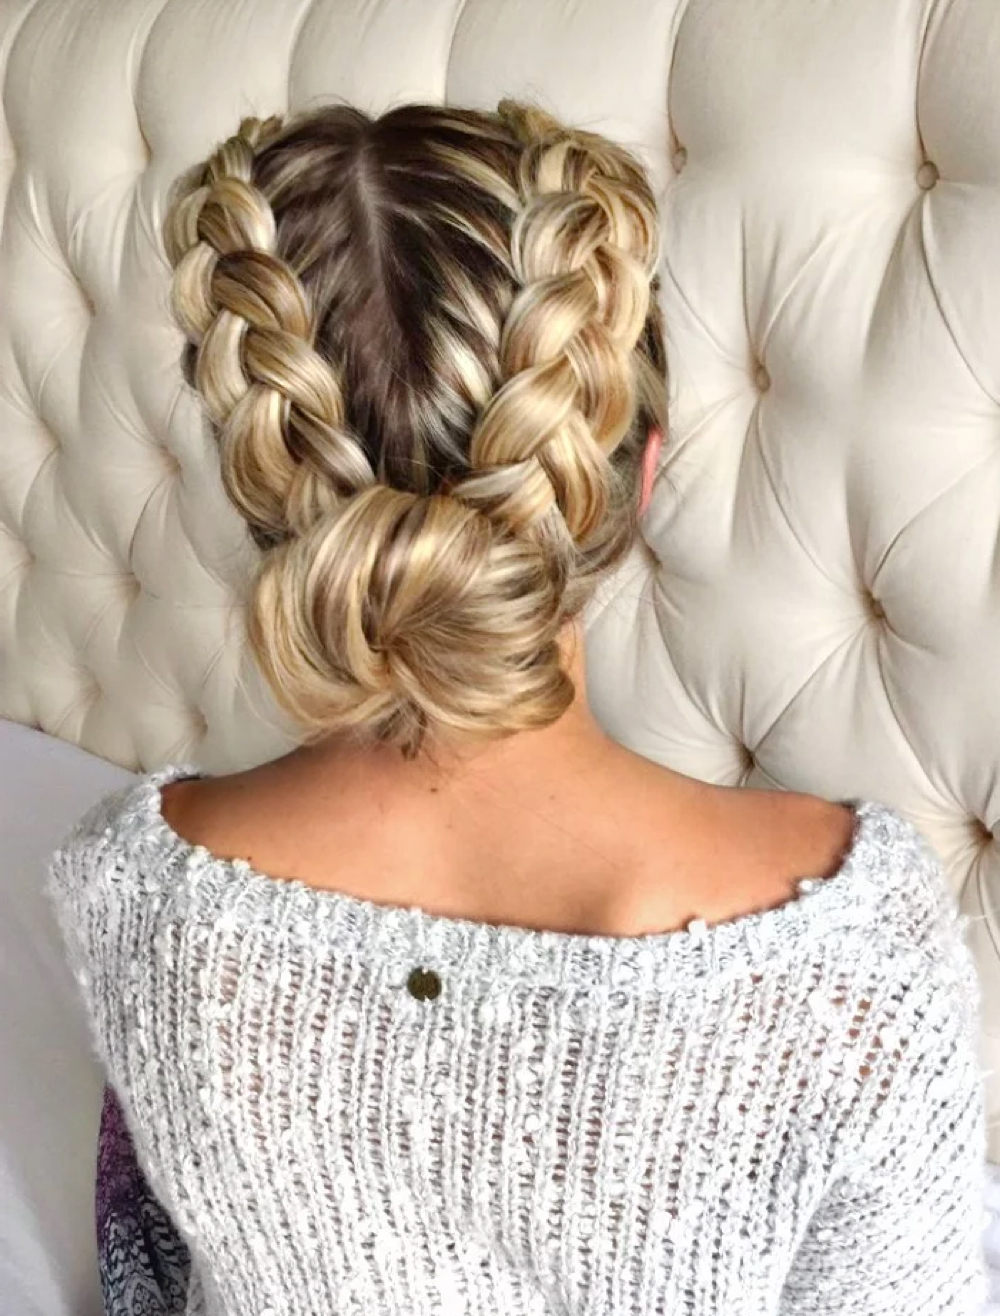 29 Gorgeous Braided Updo Ideas For 2019 Pertaining To Trendy Plaited Chignon Braided Hairstyles (View 3 of 20)